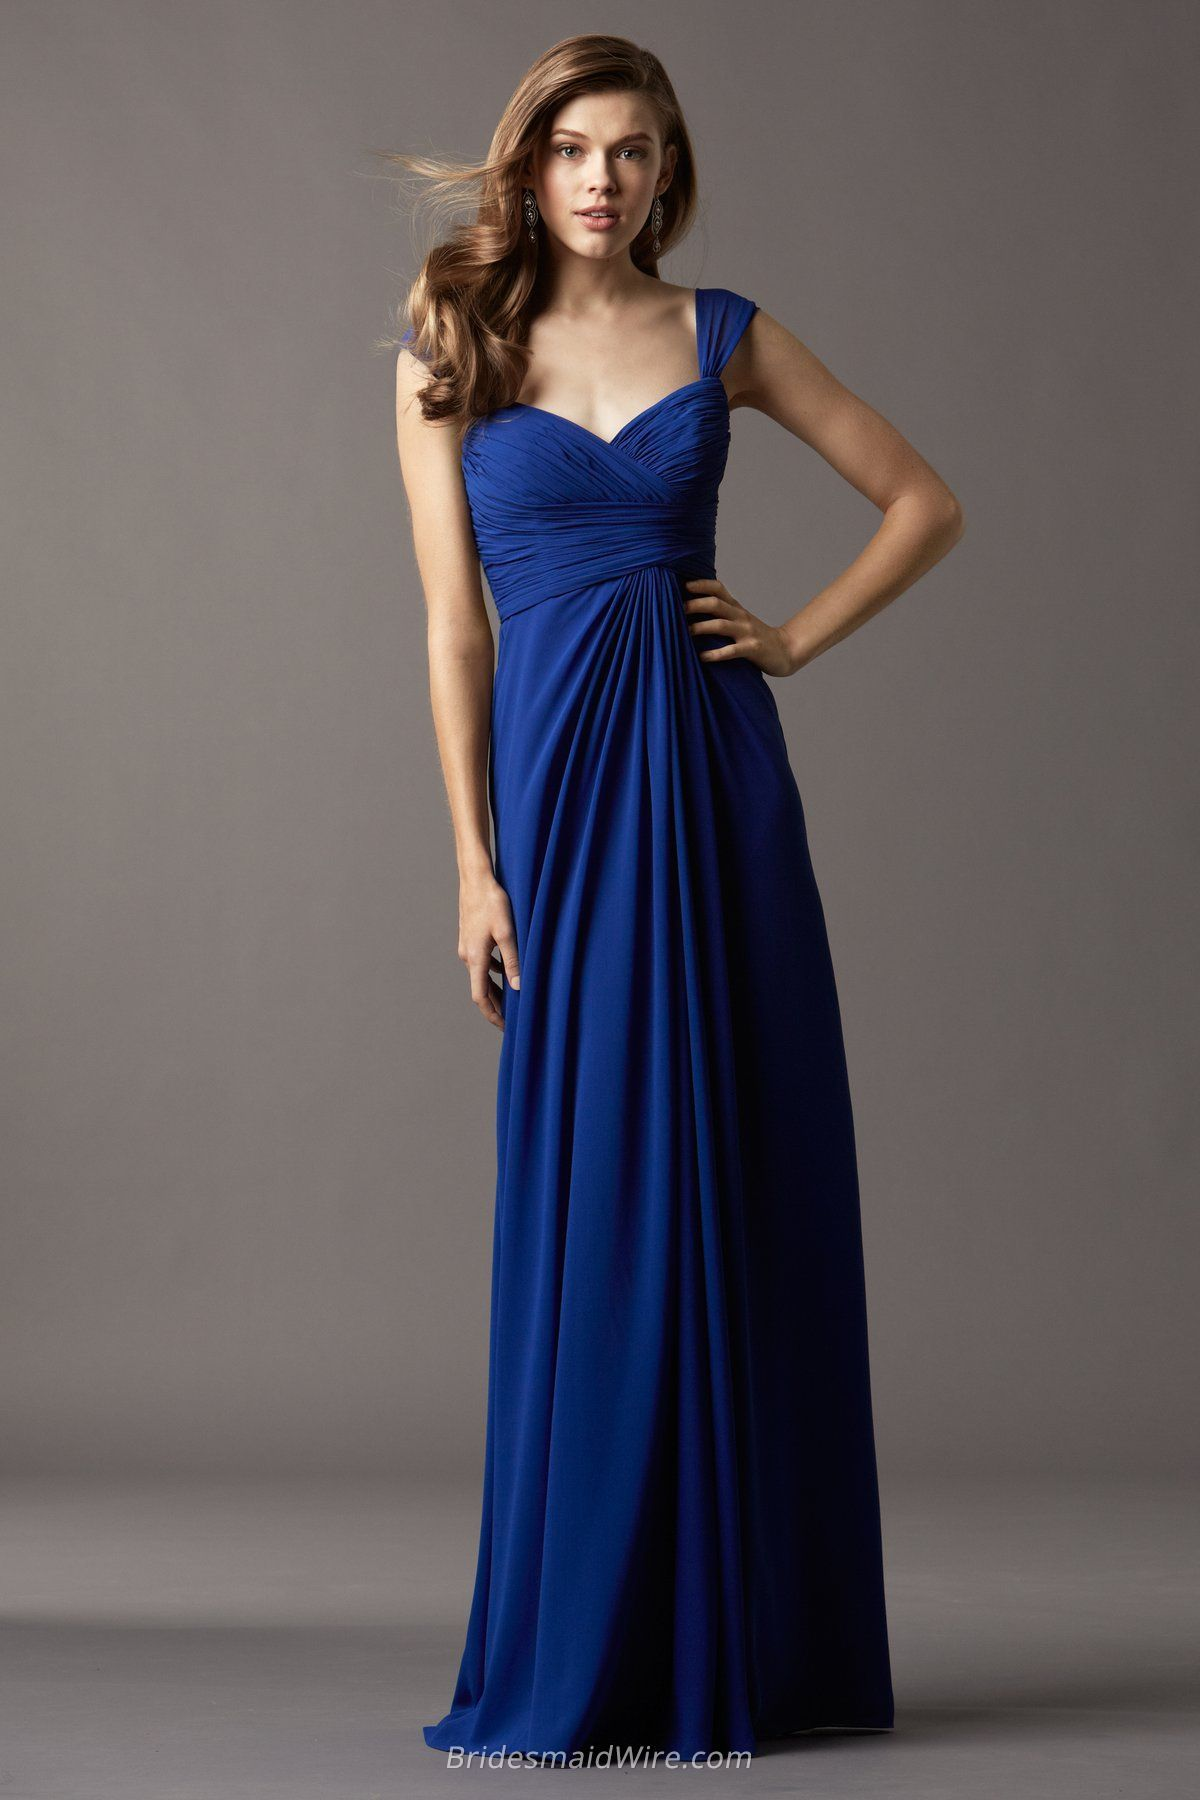 Cap sleeve floor length long royal blue chiffon draped bridesmaid cap sleeve floor length long royal blue chiffon draped bridesmaid dress ombrellifo Image collections